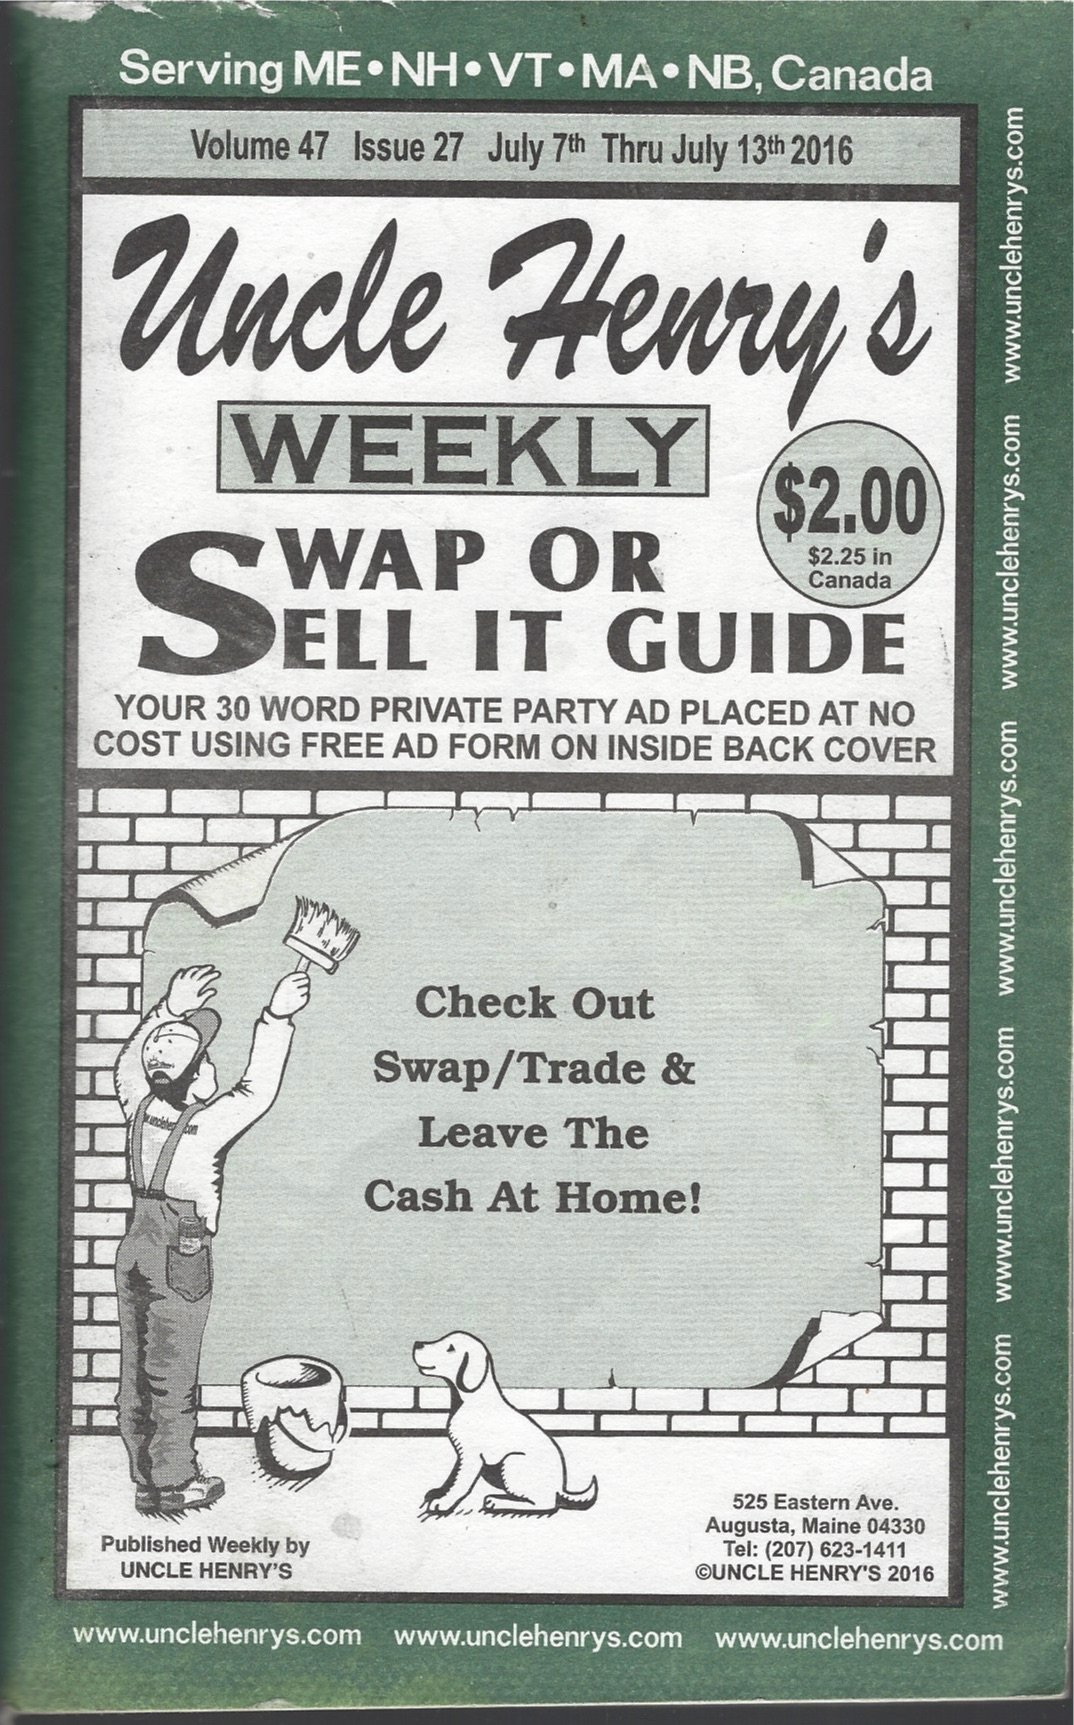 Uncle Henrys Weekly Swap Or Sell It Guide July 7th Thru July 13th